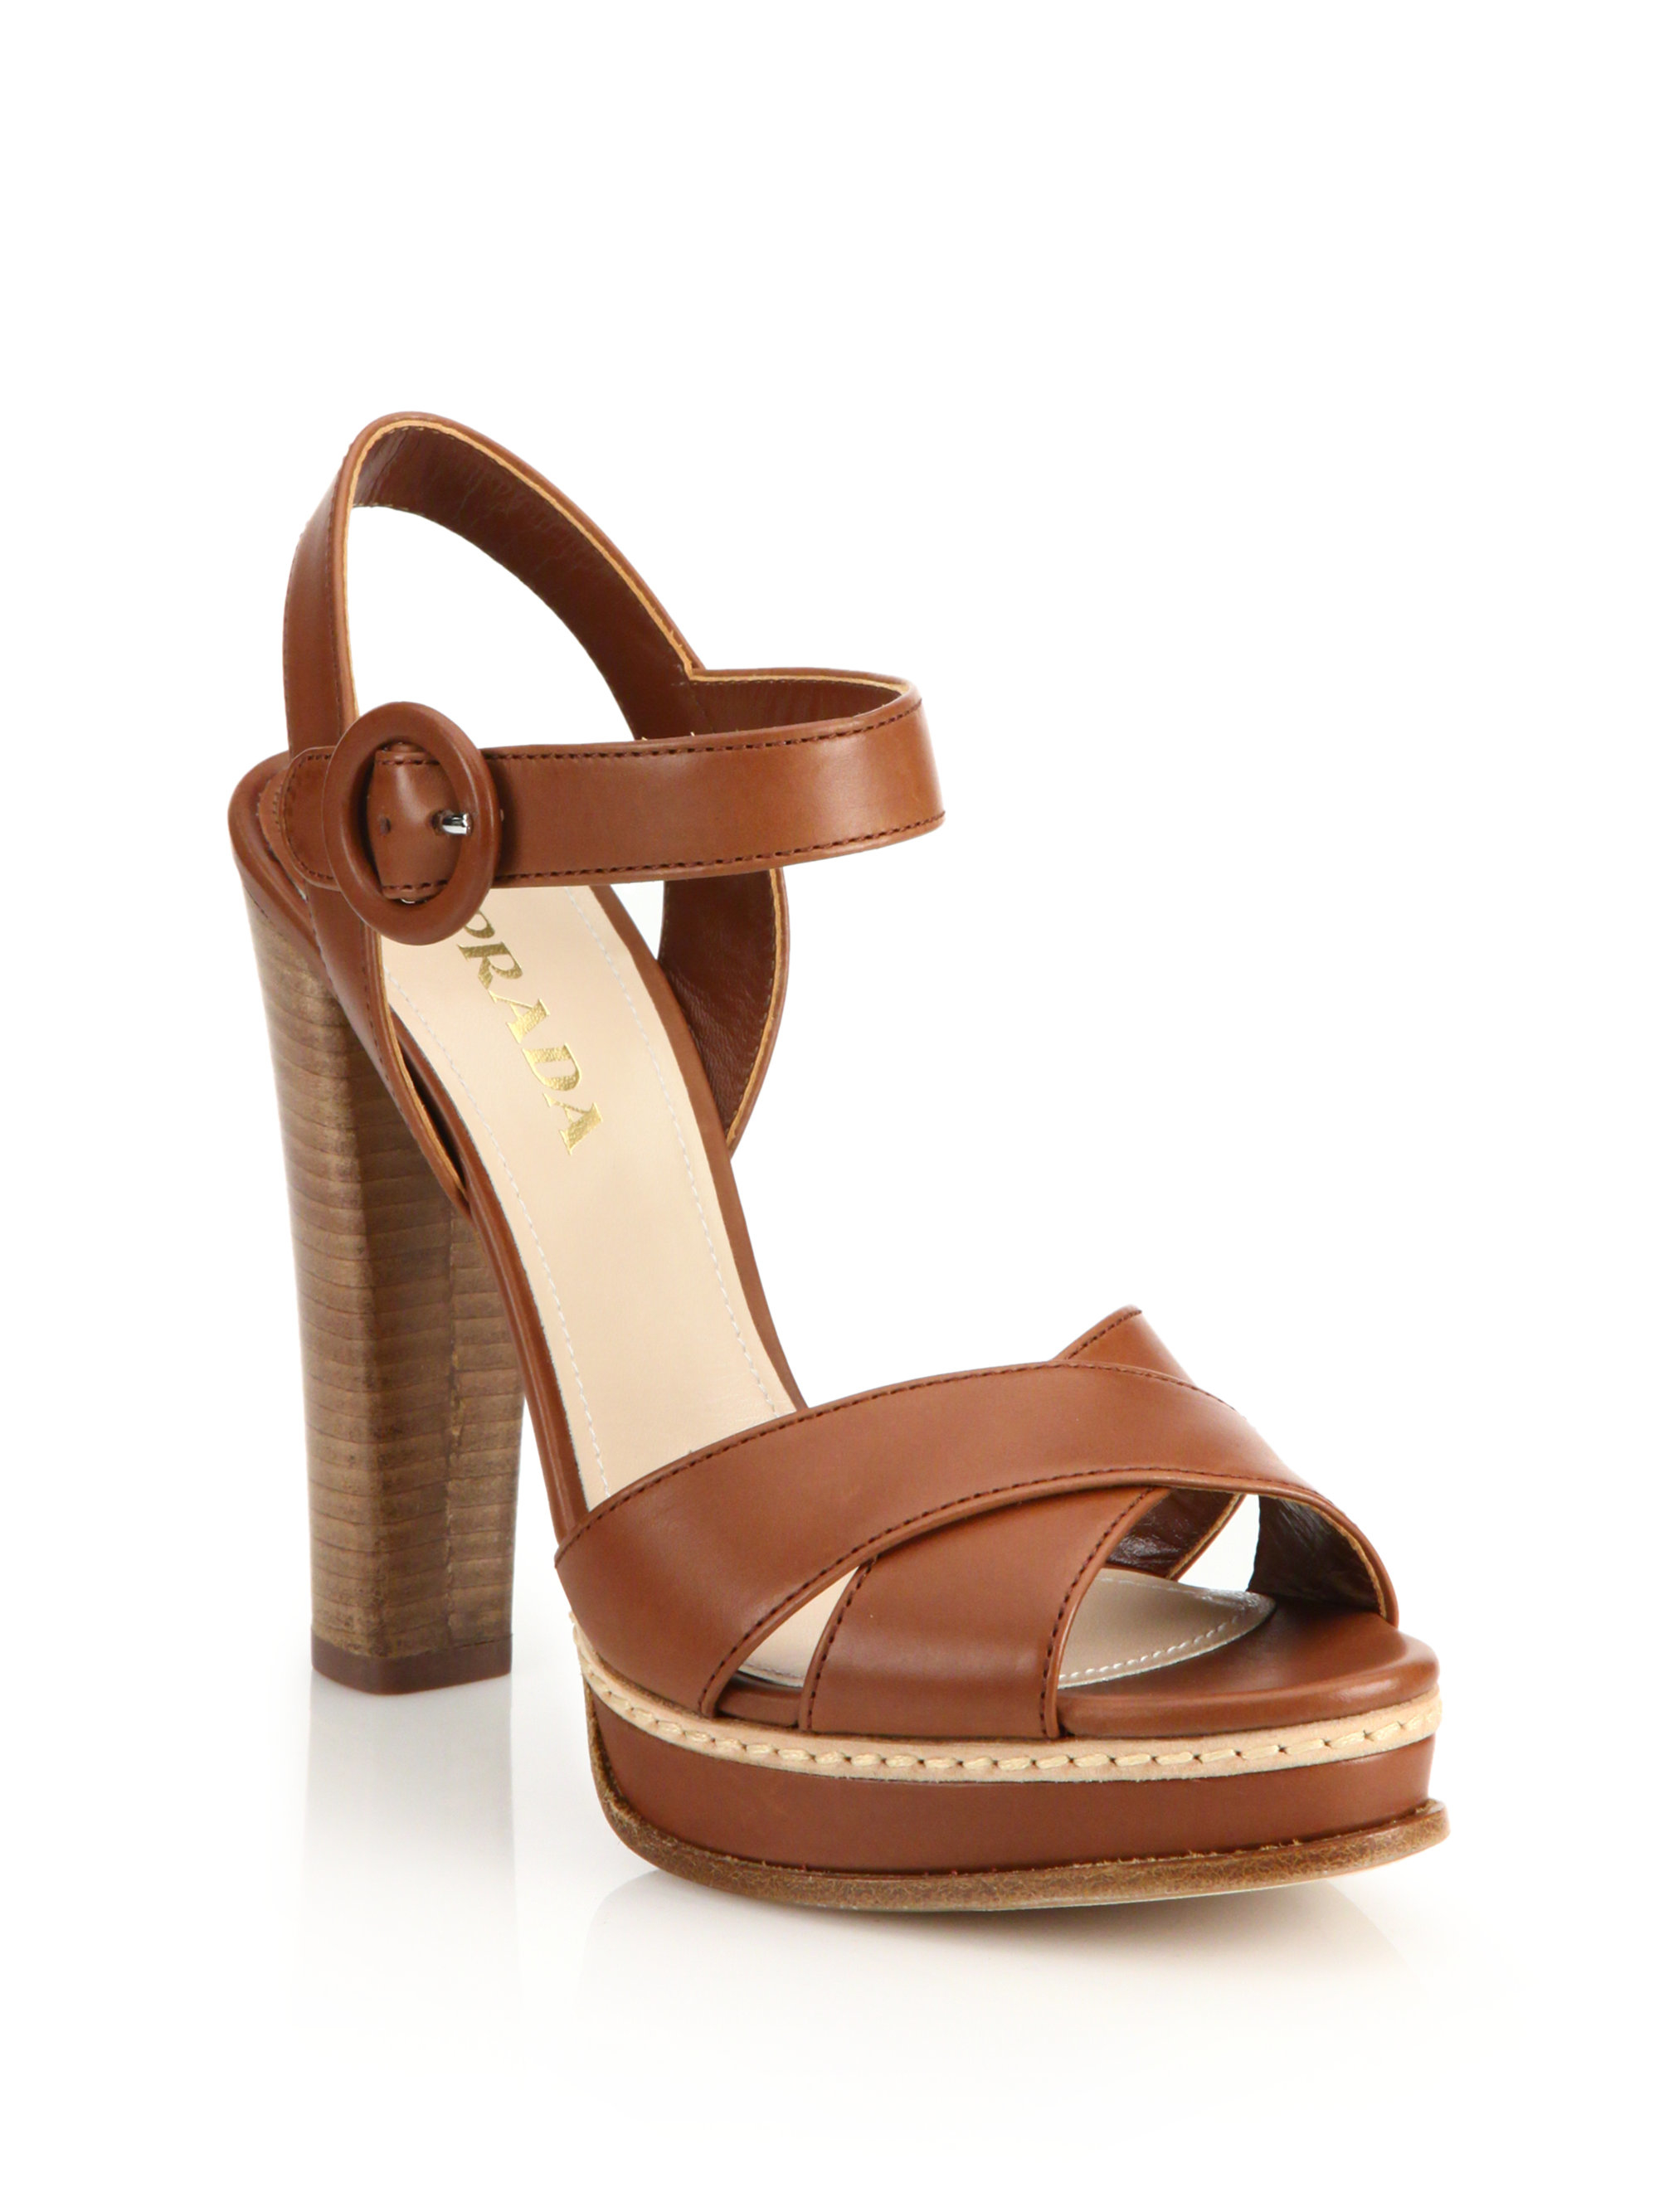 Prada Perforated Leather Bootie Sandals in Brown (COGNAC) | Lyst